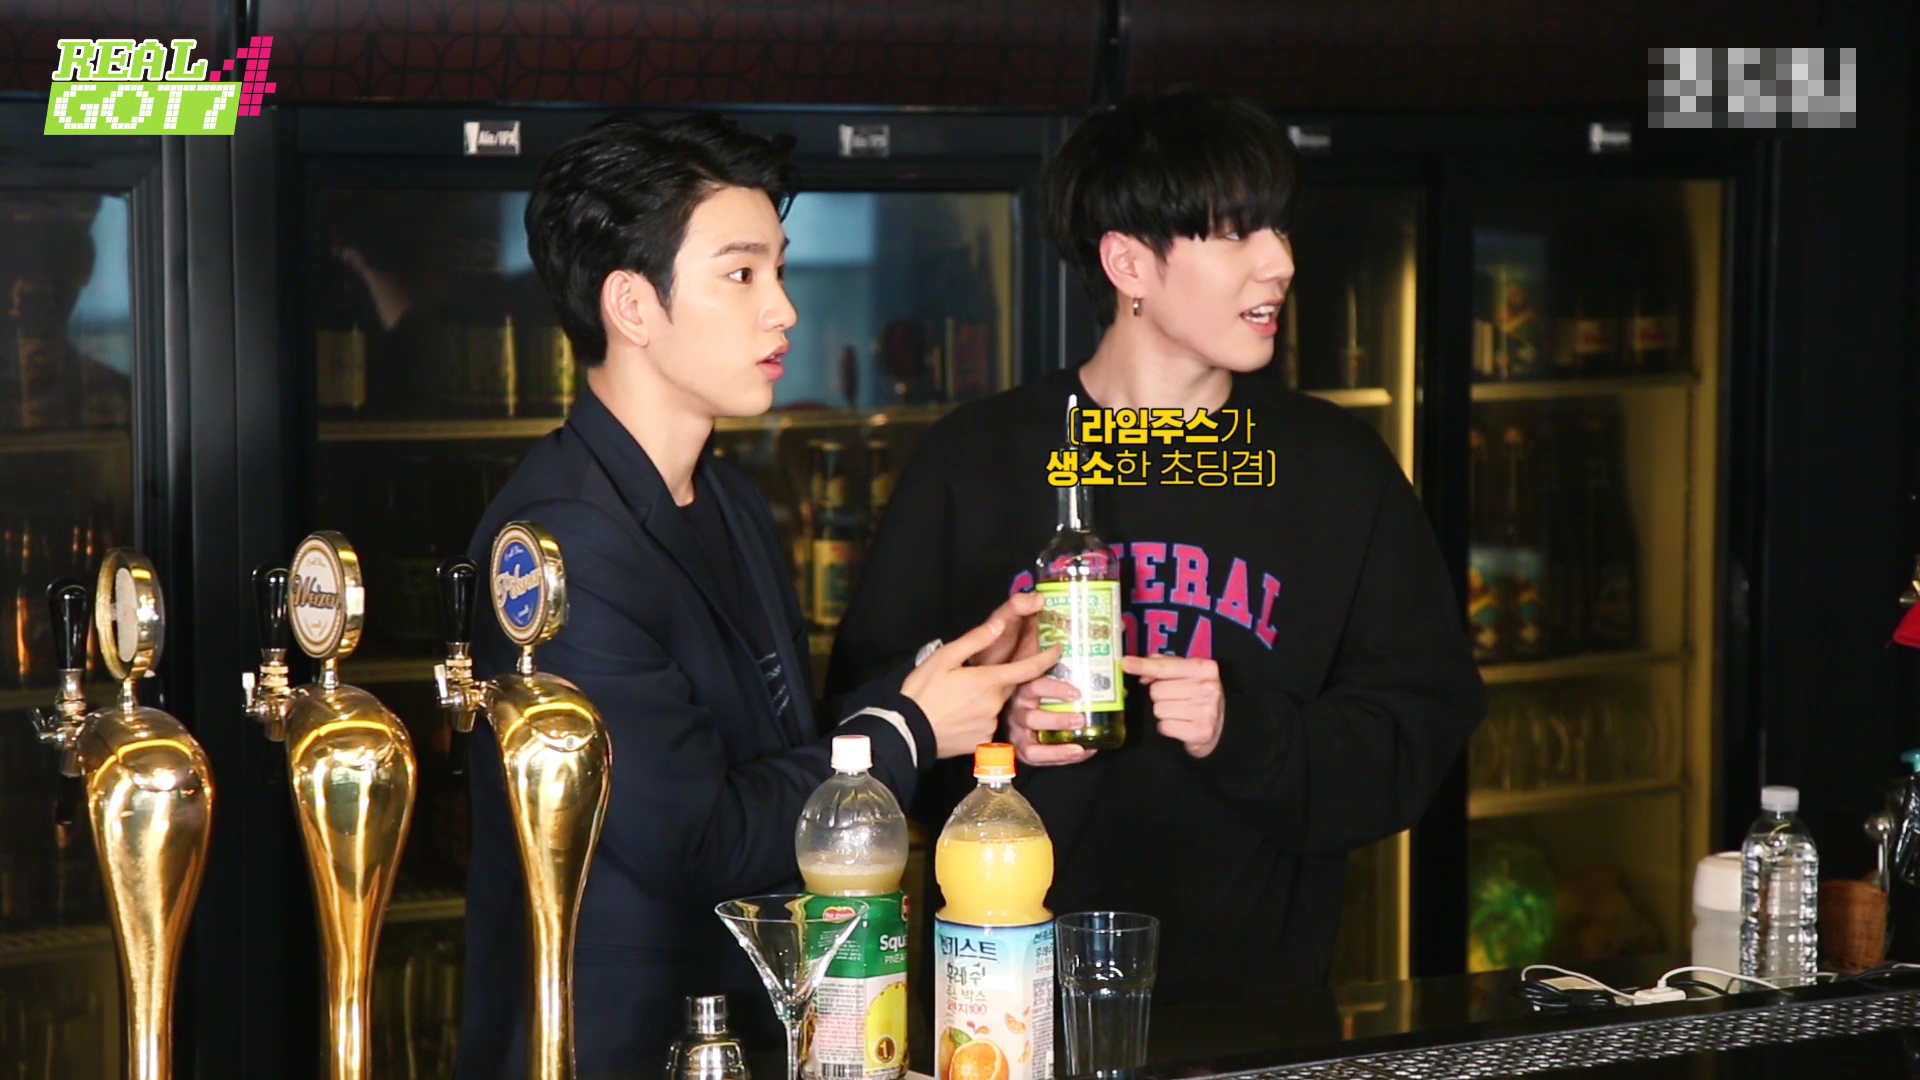 [REAL GOT7 Season 4] EP07. Drink, Play, Talk